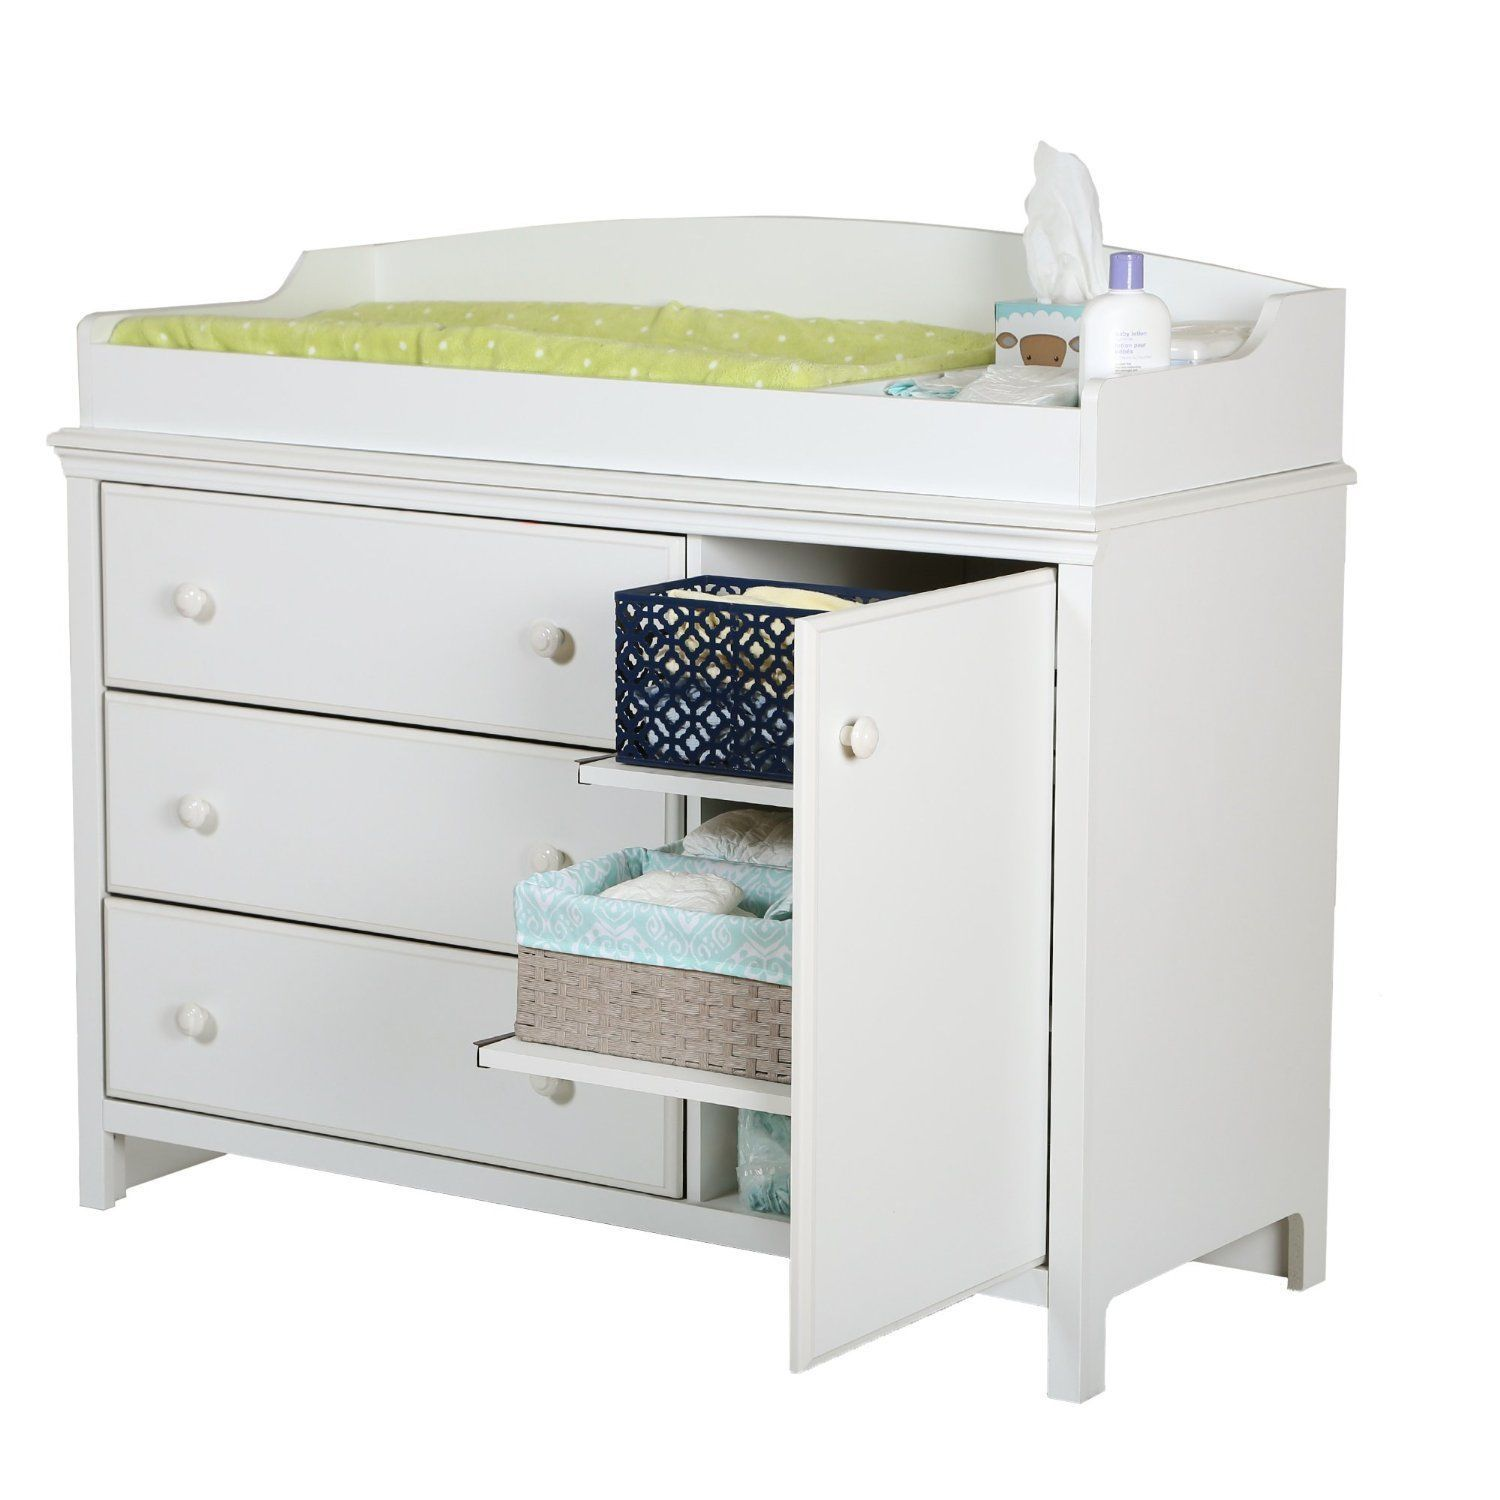 Baby Dresser With Changing Table White Drawers Shelves Nursery Station Storage Changing Table Dresser Changing Dresser Baby Changing Tables